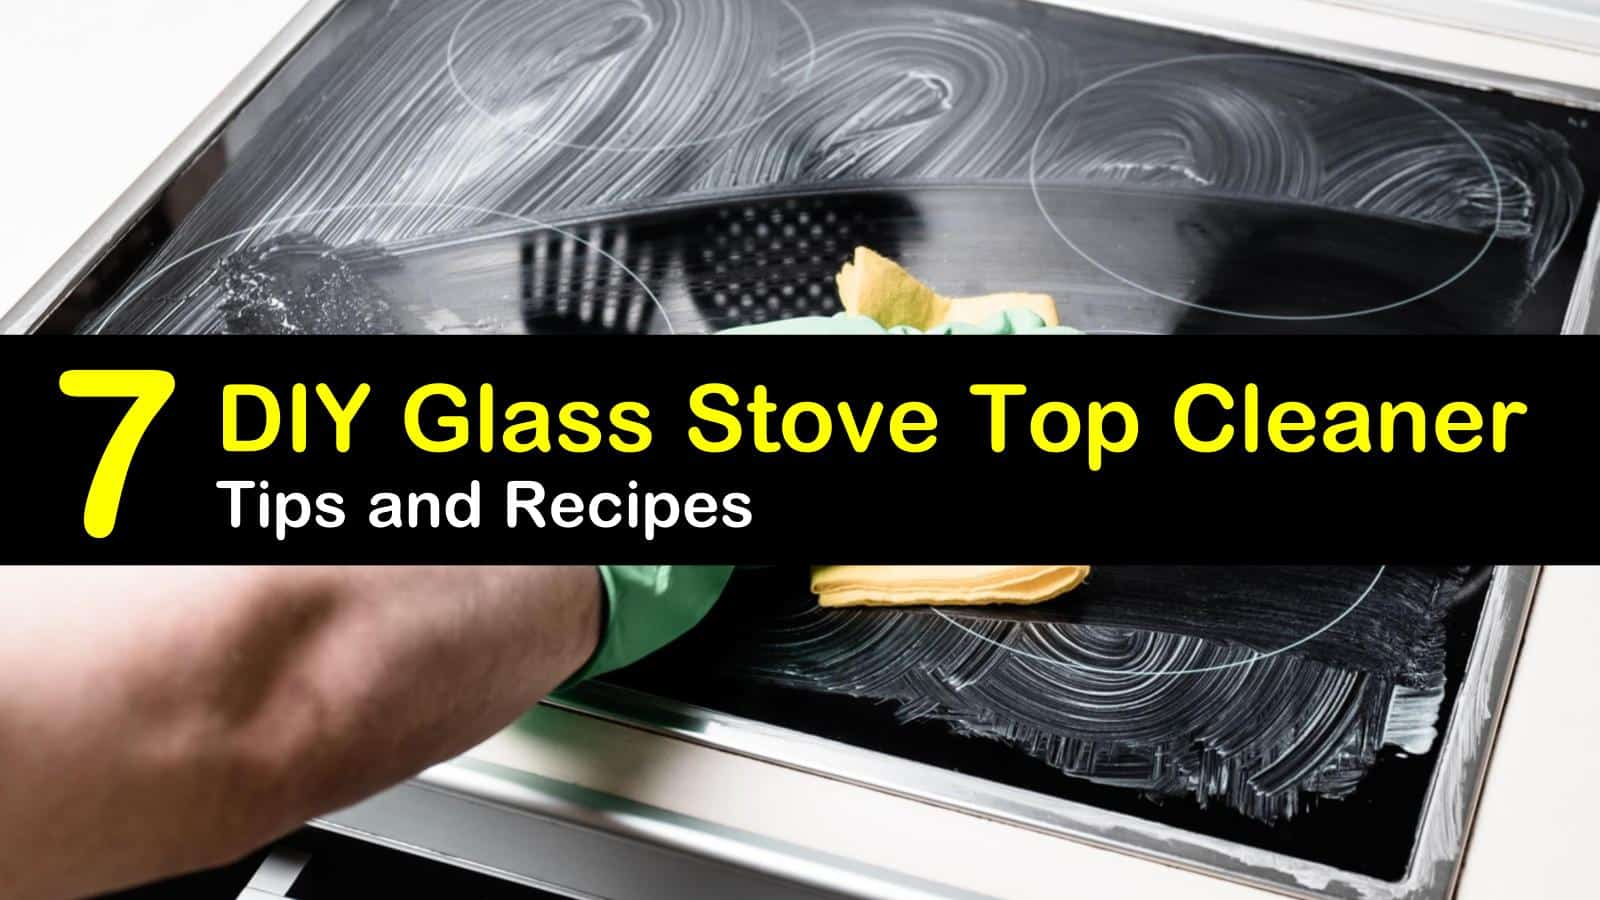 Diy Glass Stove Top Cleaner 7 Tips And Recipes To Clean